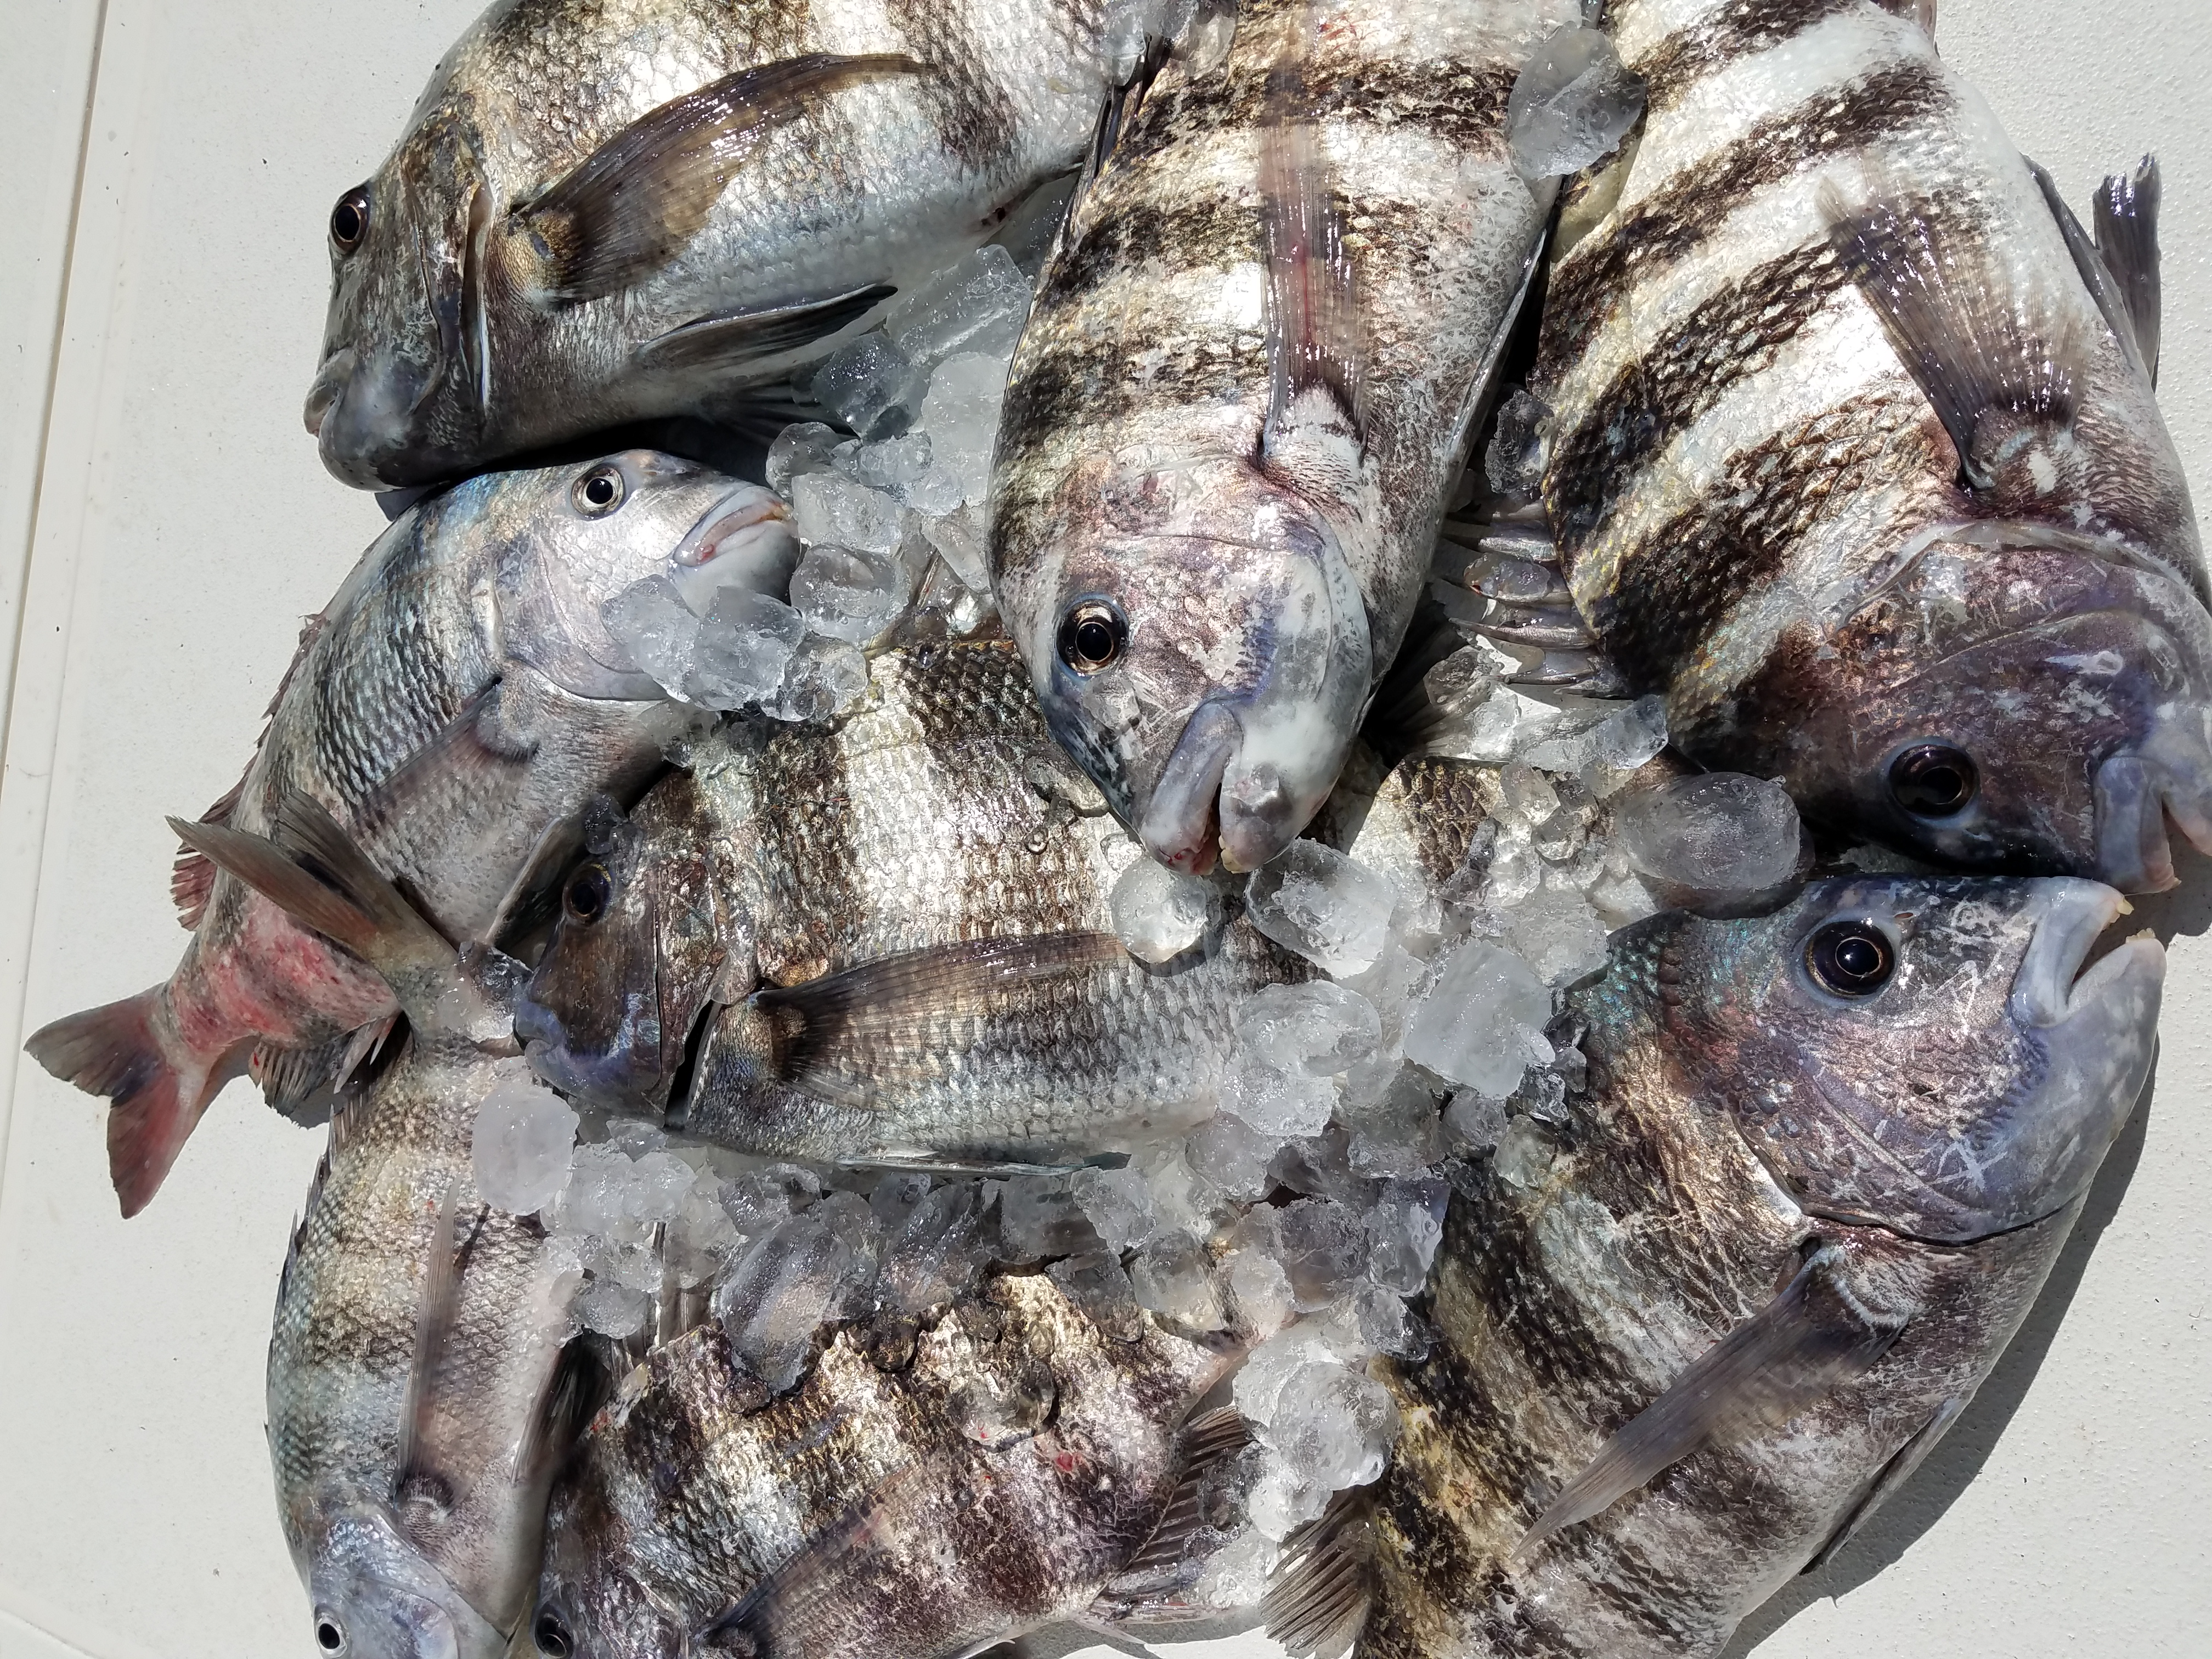 Sheepshead caught deep sea fishing trip out of clearwater beach florida